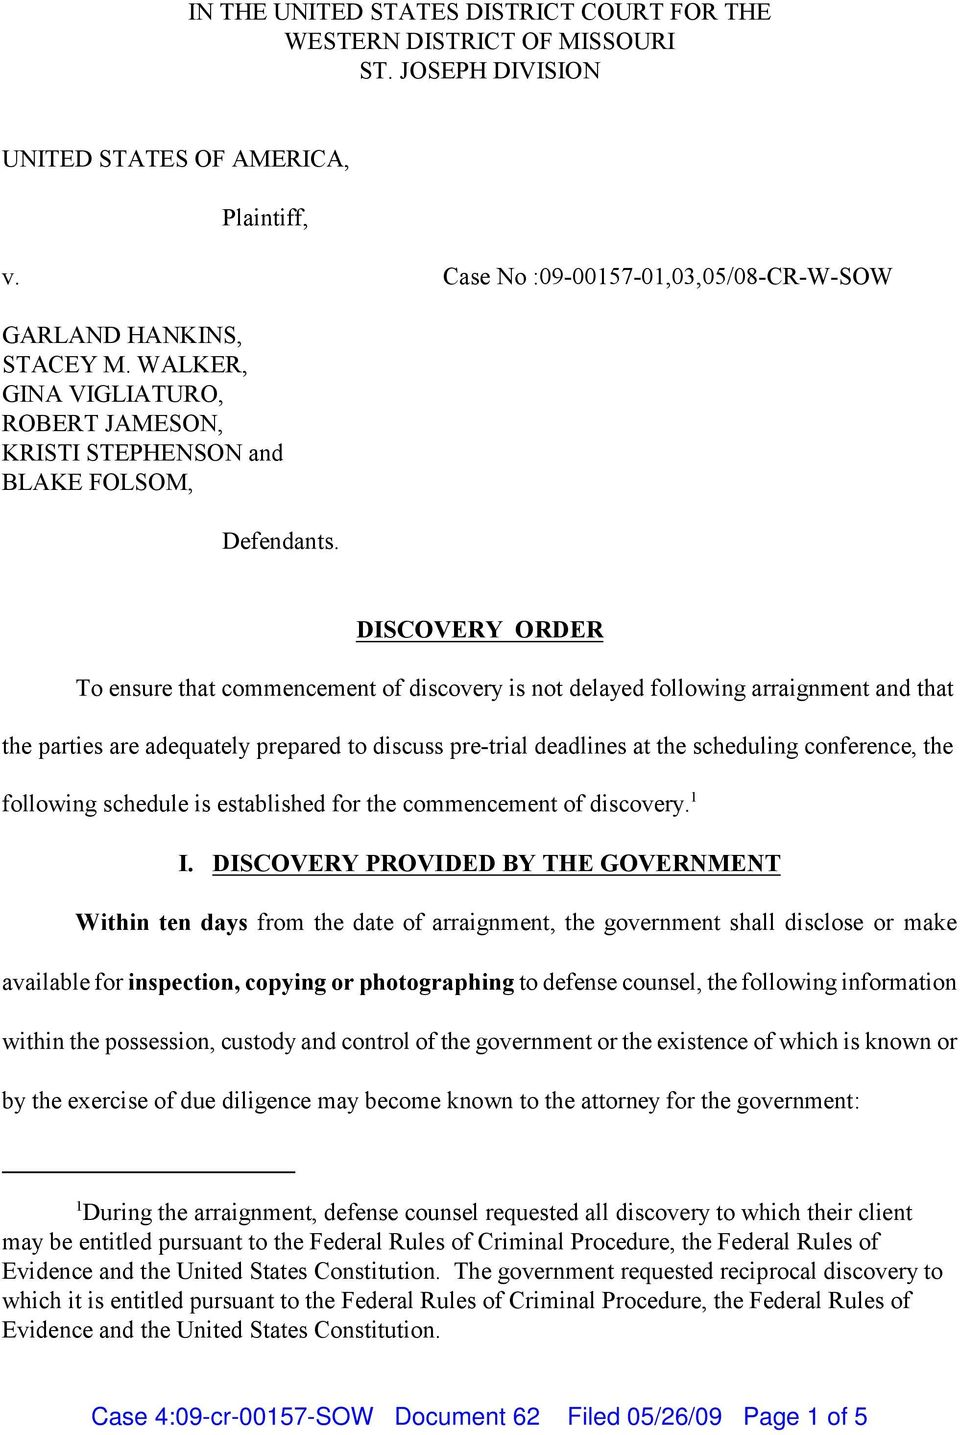 DISCOVERY ORDER To ensure that commencement of discovery is not delayed following arraignment and that the parties are adequately prepared to discuss pre-trial deadlines at the scheduling conference,